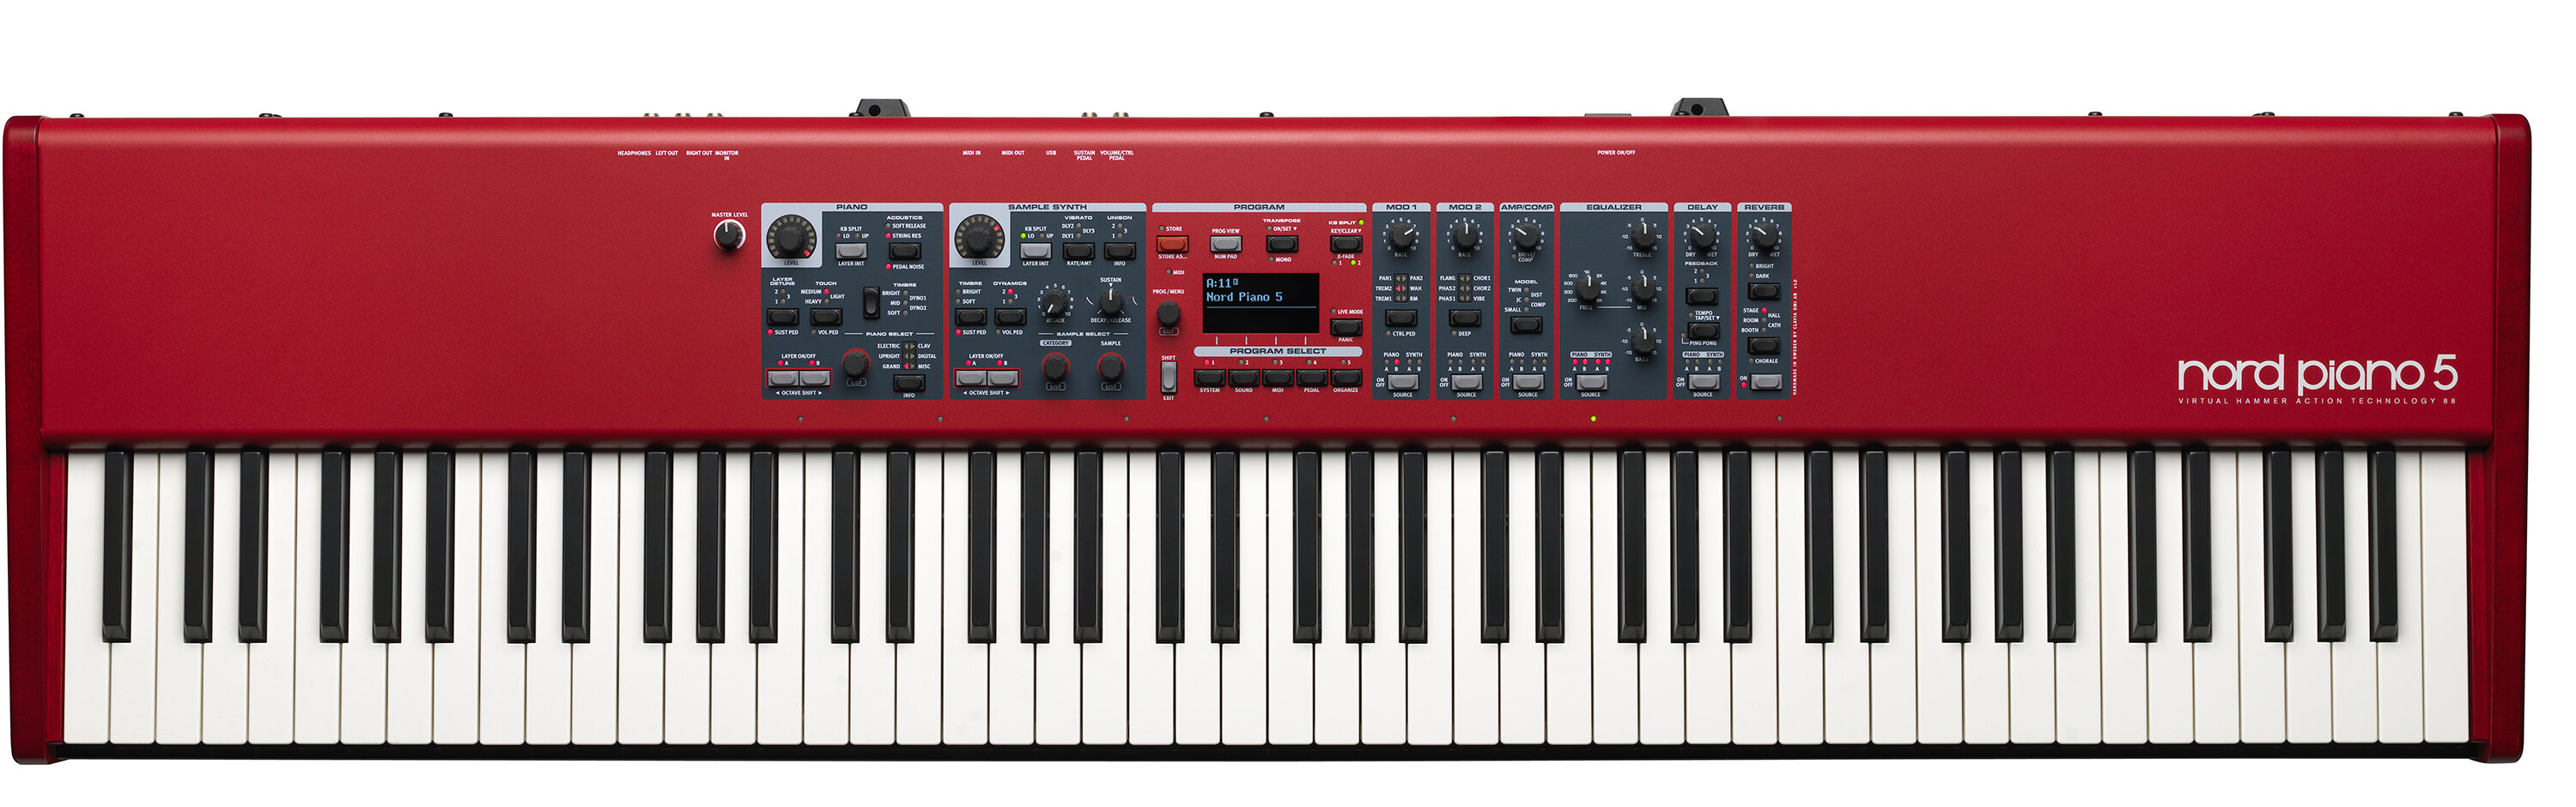 Nord Piano 5 88-note weighted keyboard